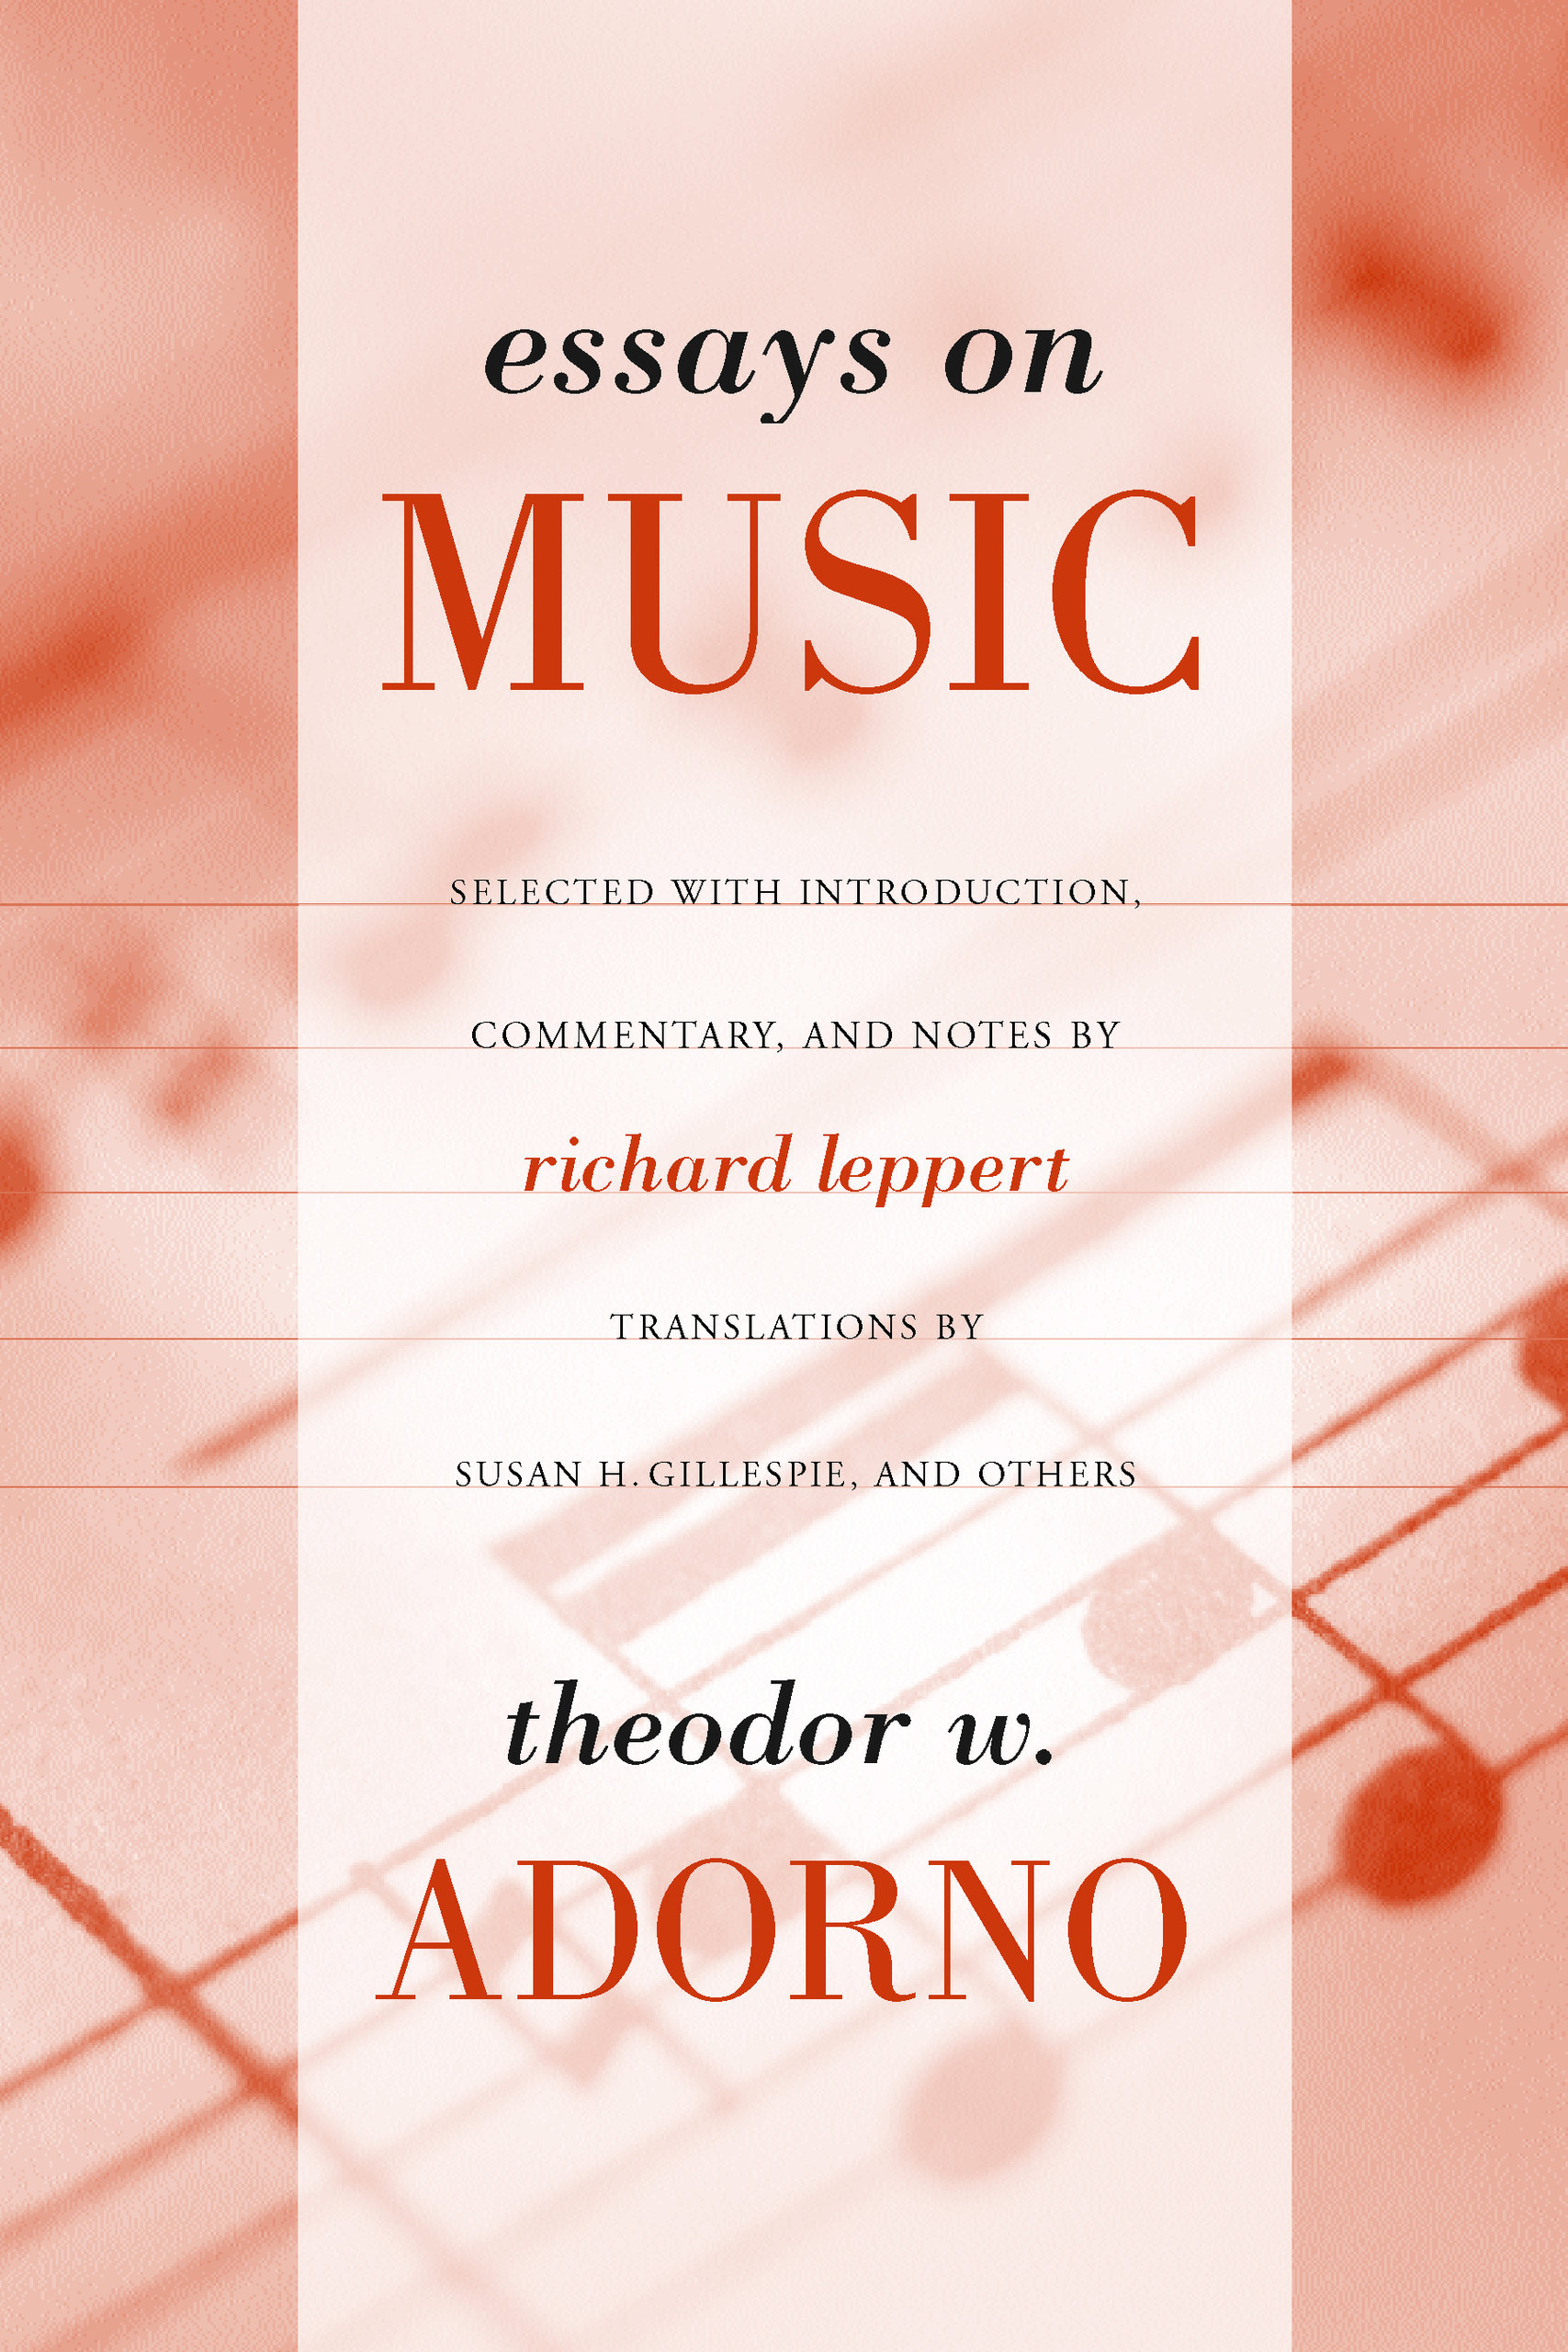 Essays on Music - Theodor Adorno, Richard Leppert - Paperback ...